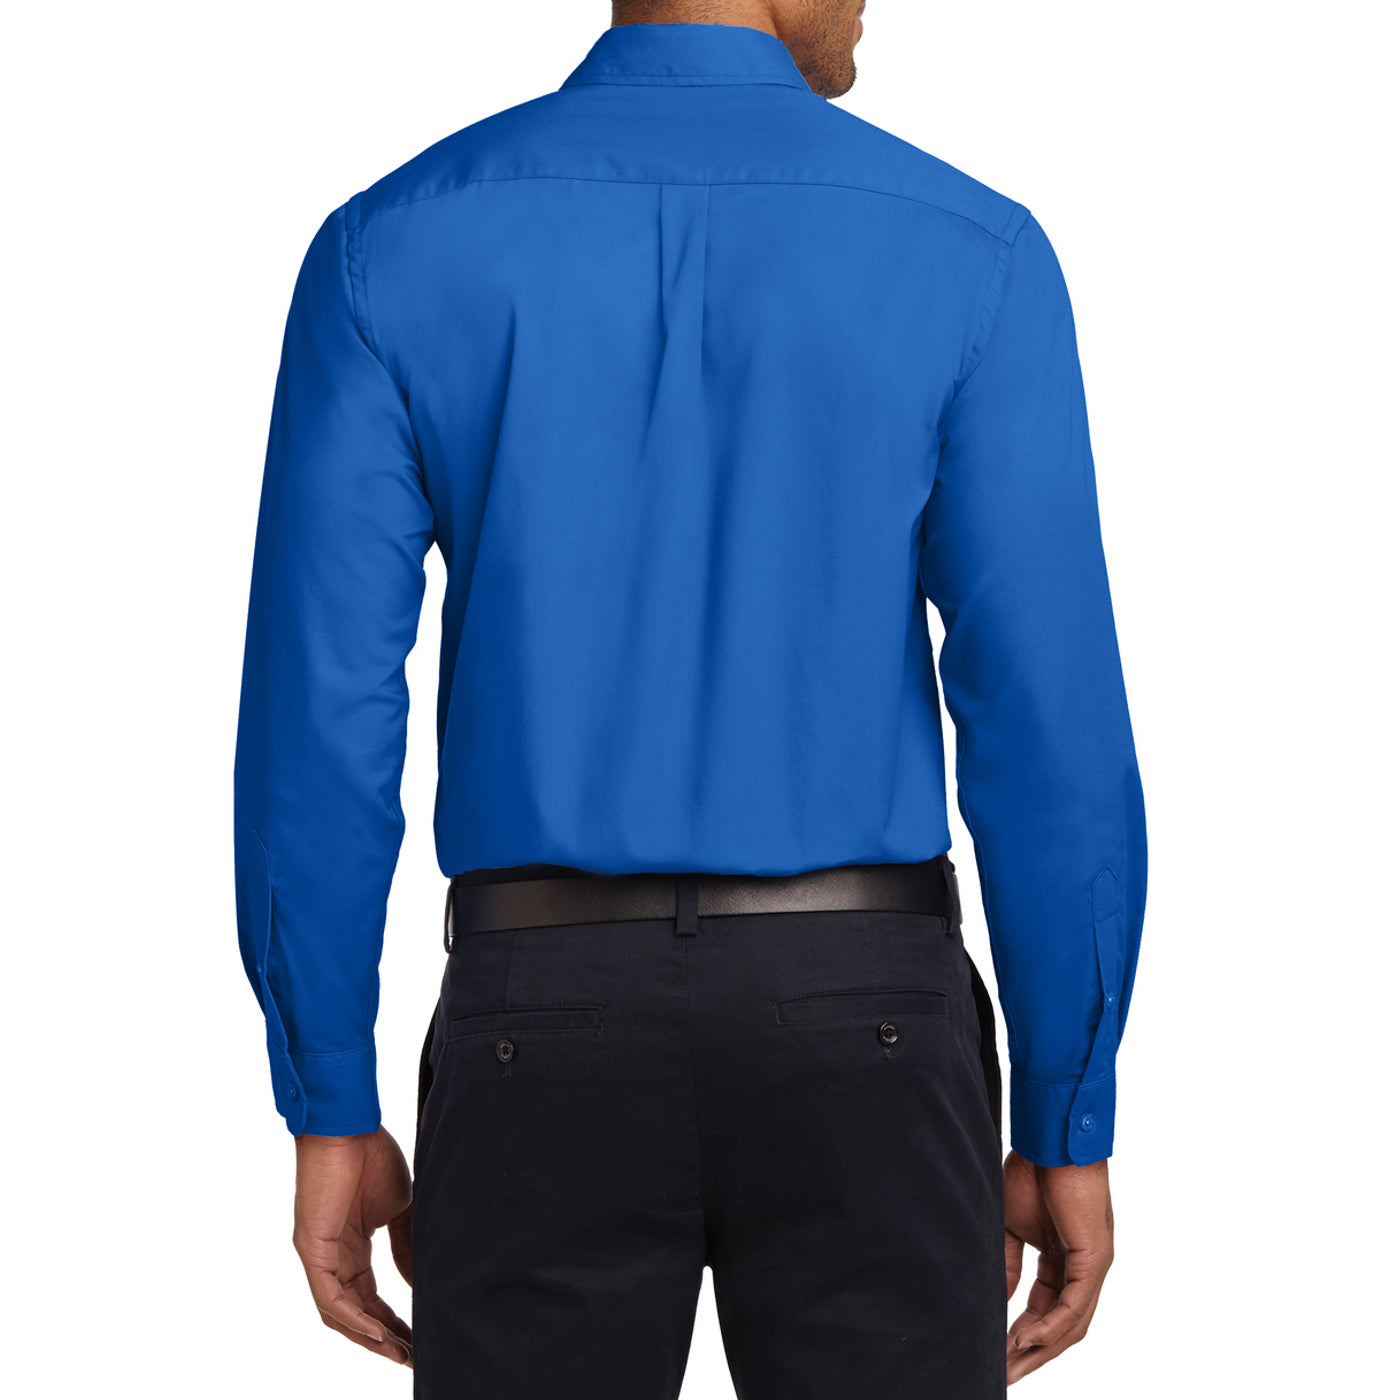 Men's Long Sleeve Easy Care Shirt - Strong Blue - Back